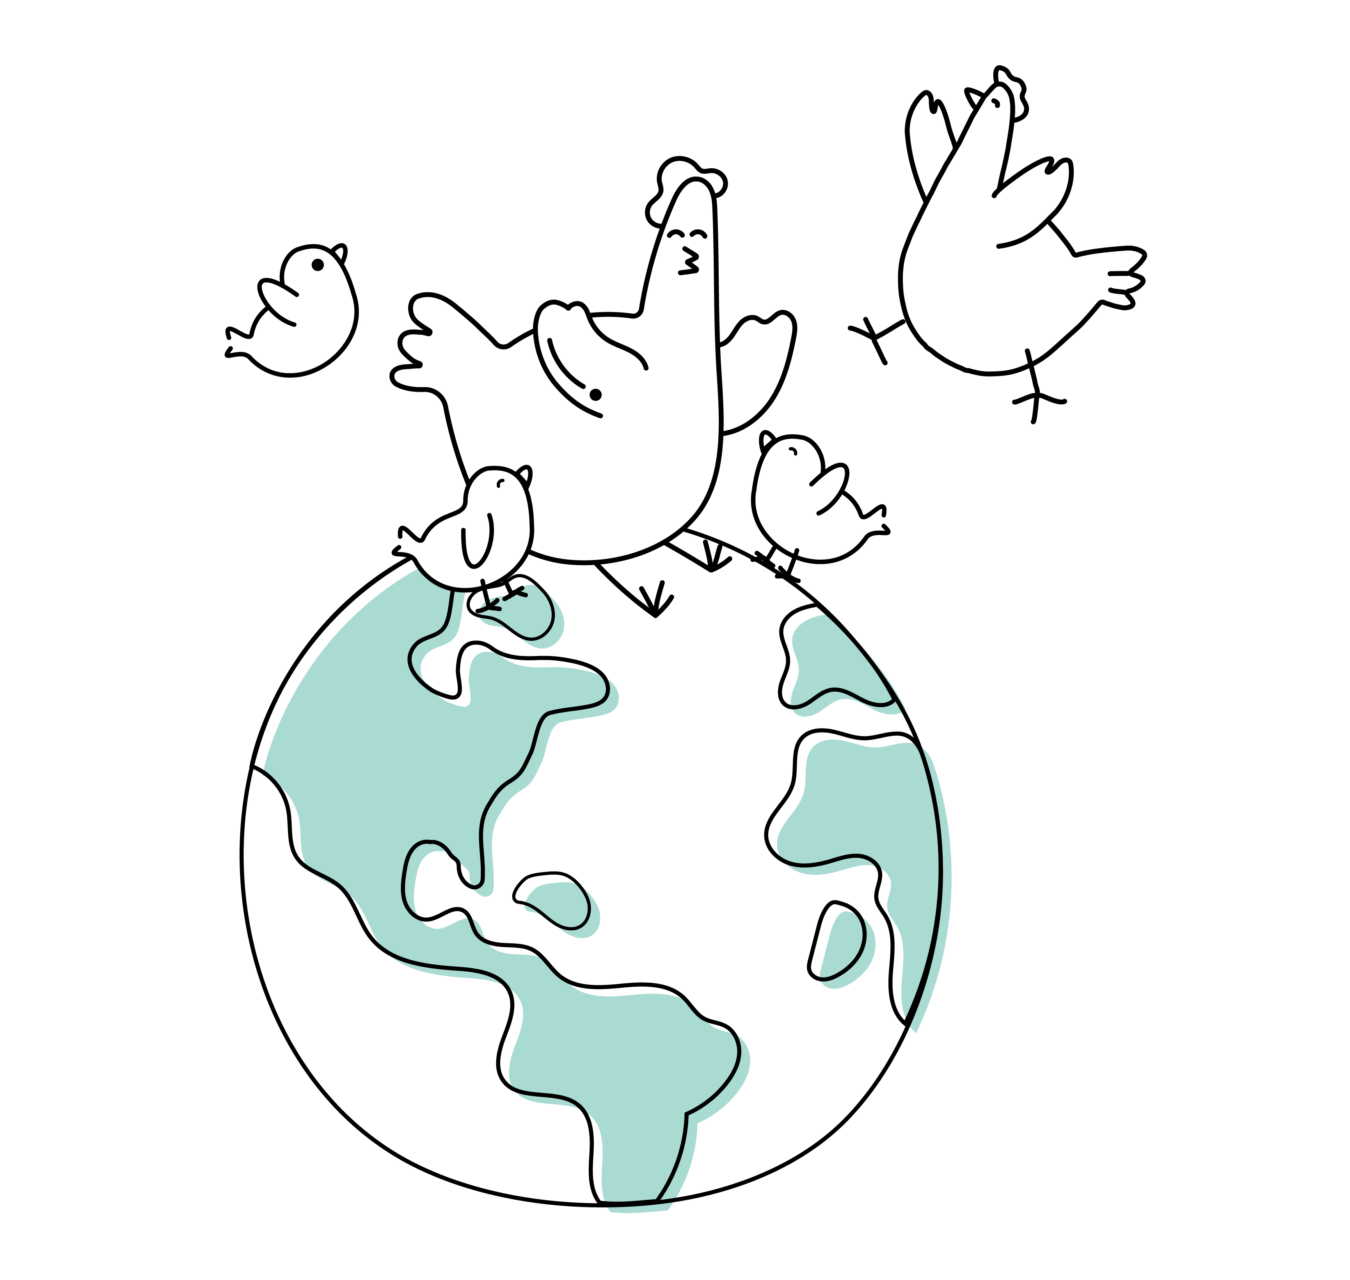 illustration depicting happy chickens interacting with planet earth